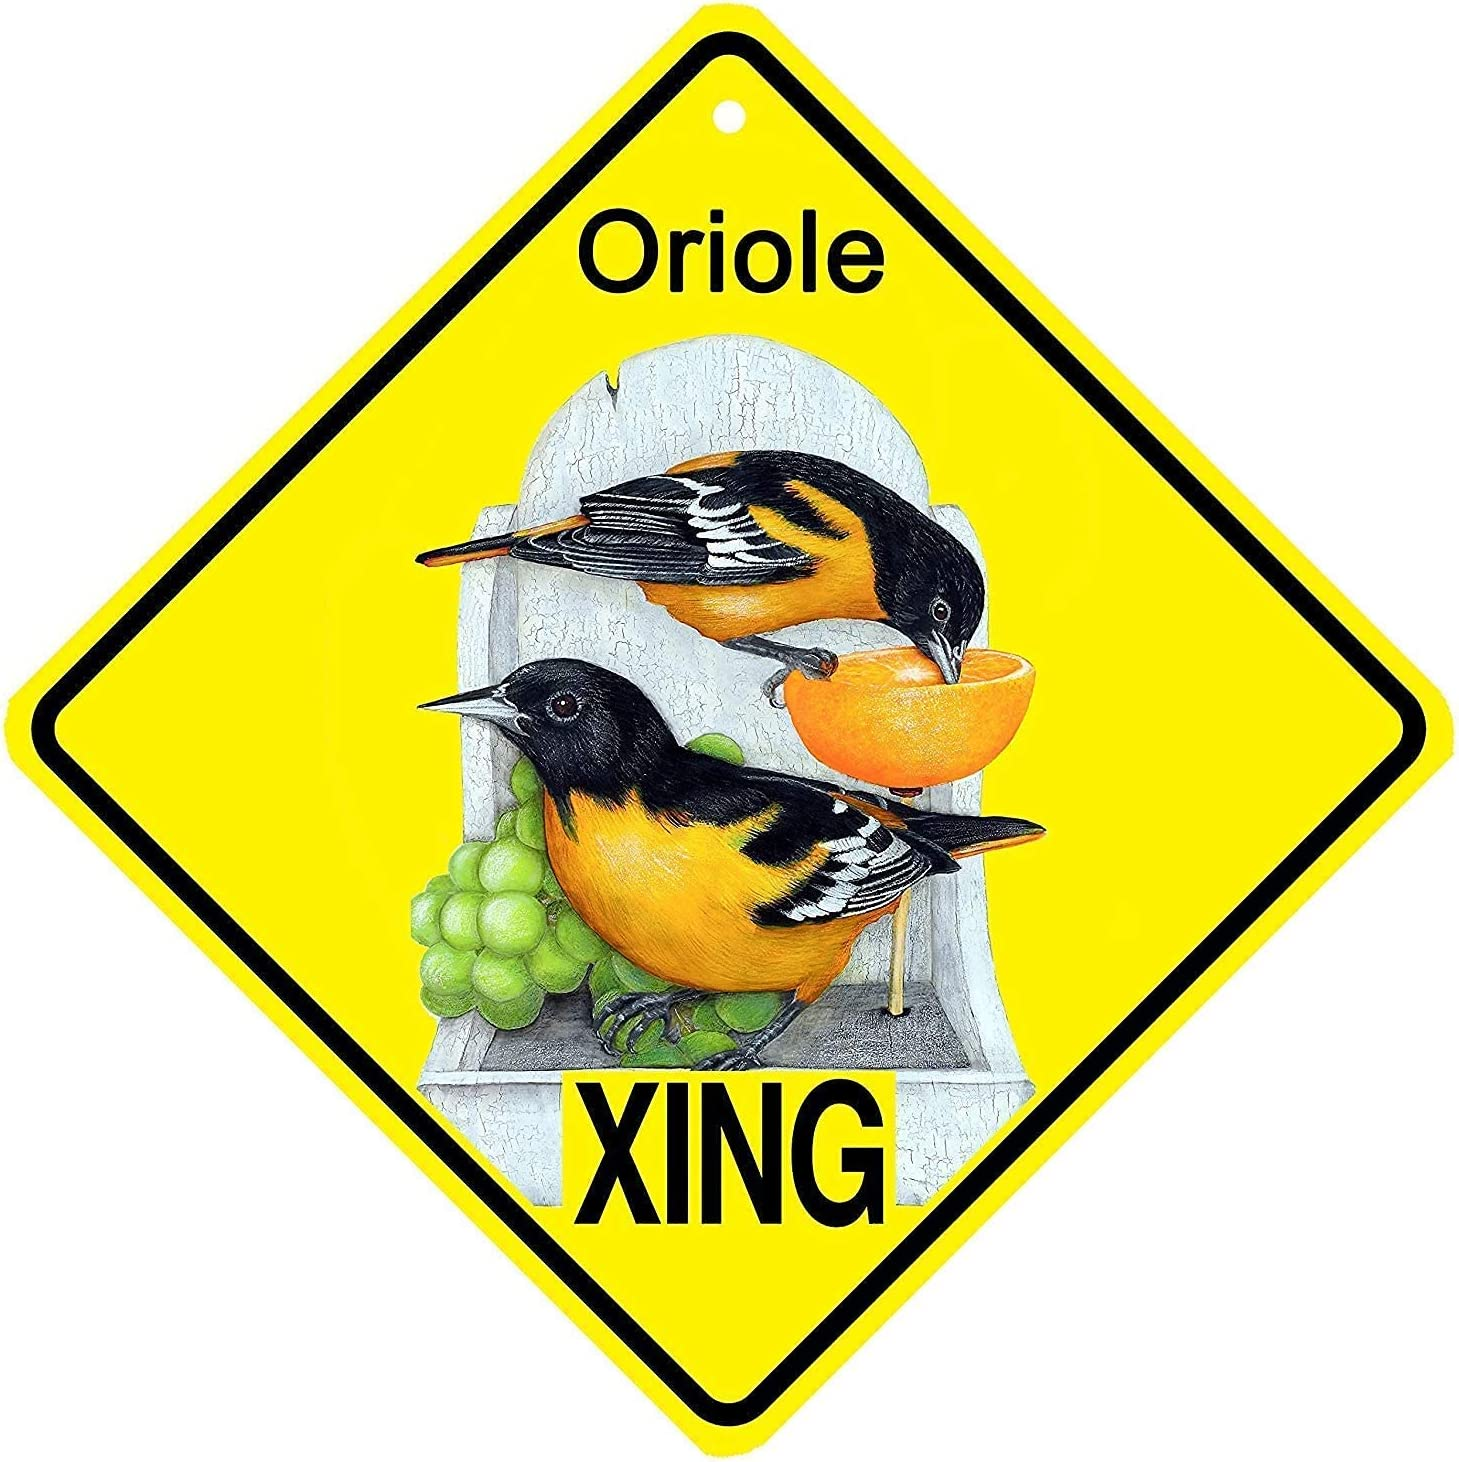 kegill Metal Tin Signs Baltimore Oriole Bird Xing Crossing Sign Wall Decor Outdoor Wall Art Decorative Metal Sign Plaque for Indoor Outdoor